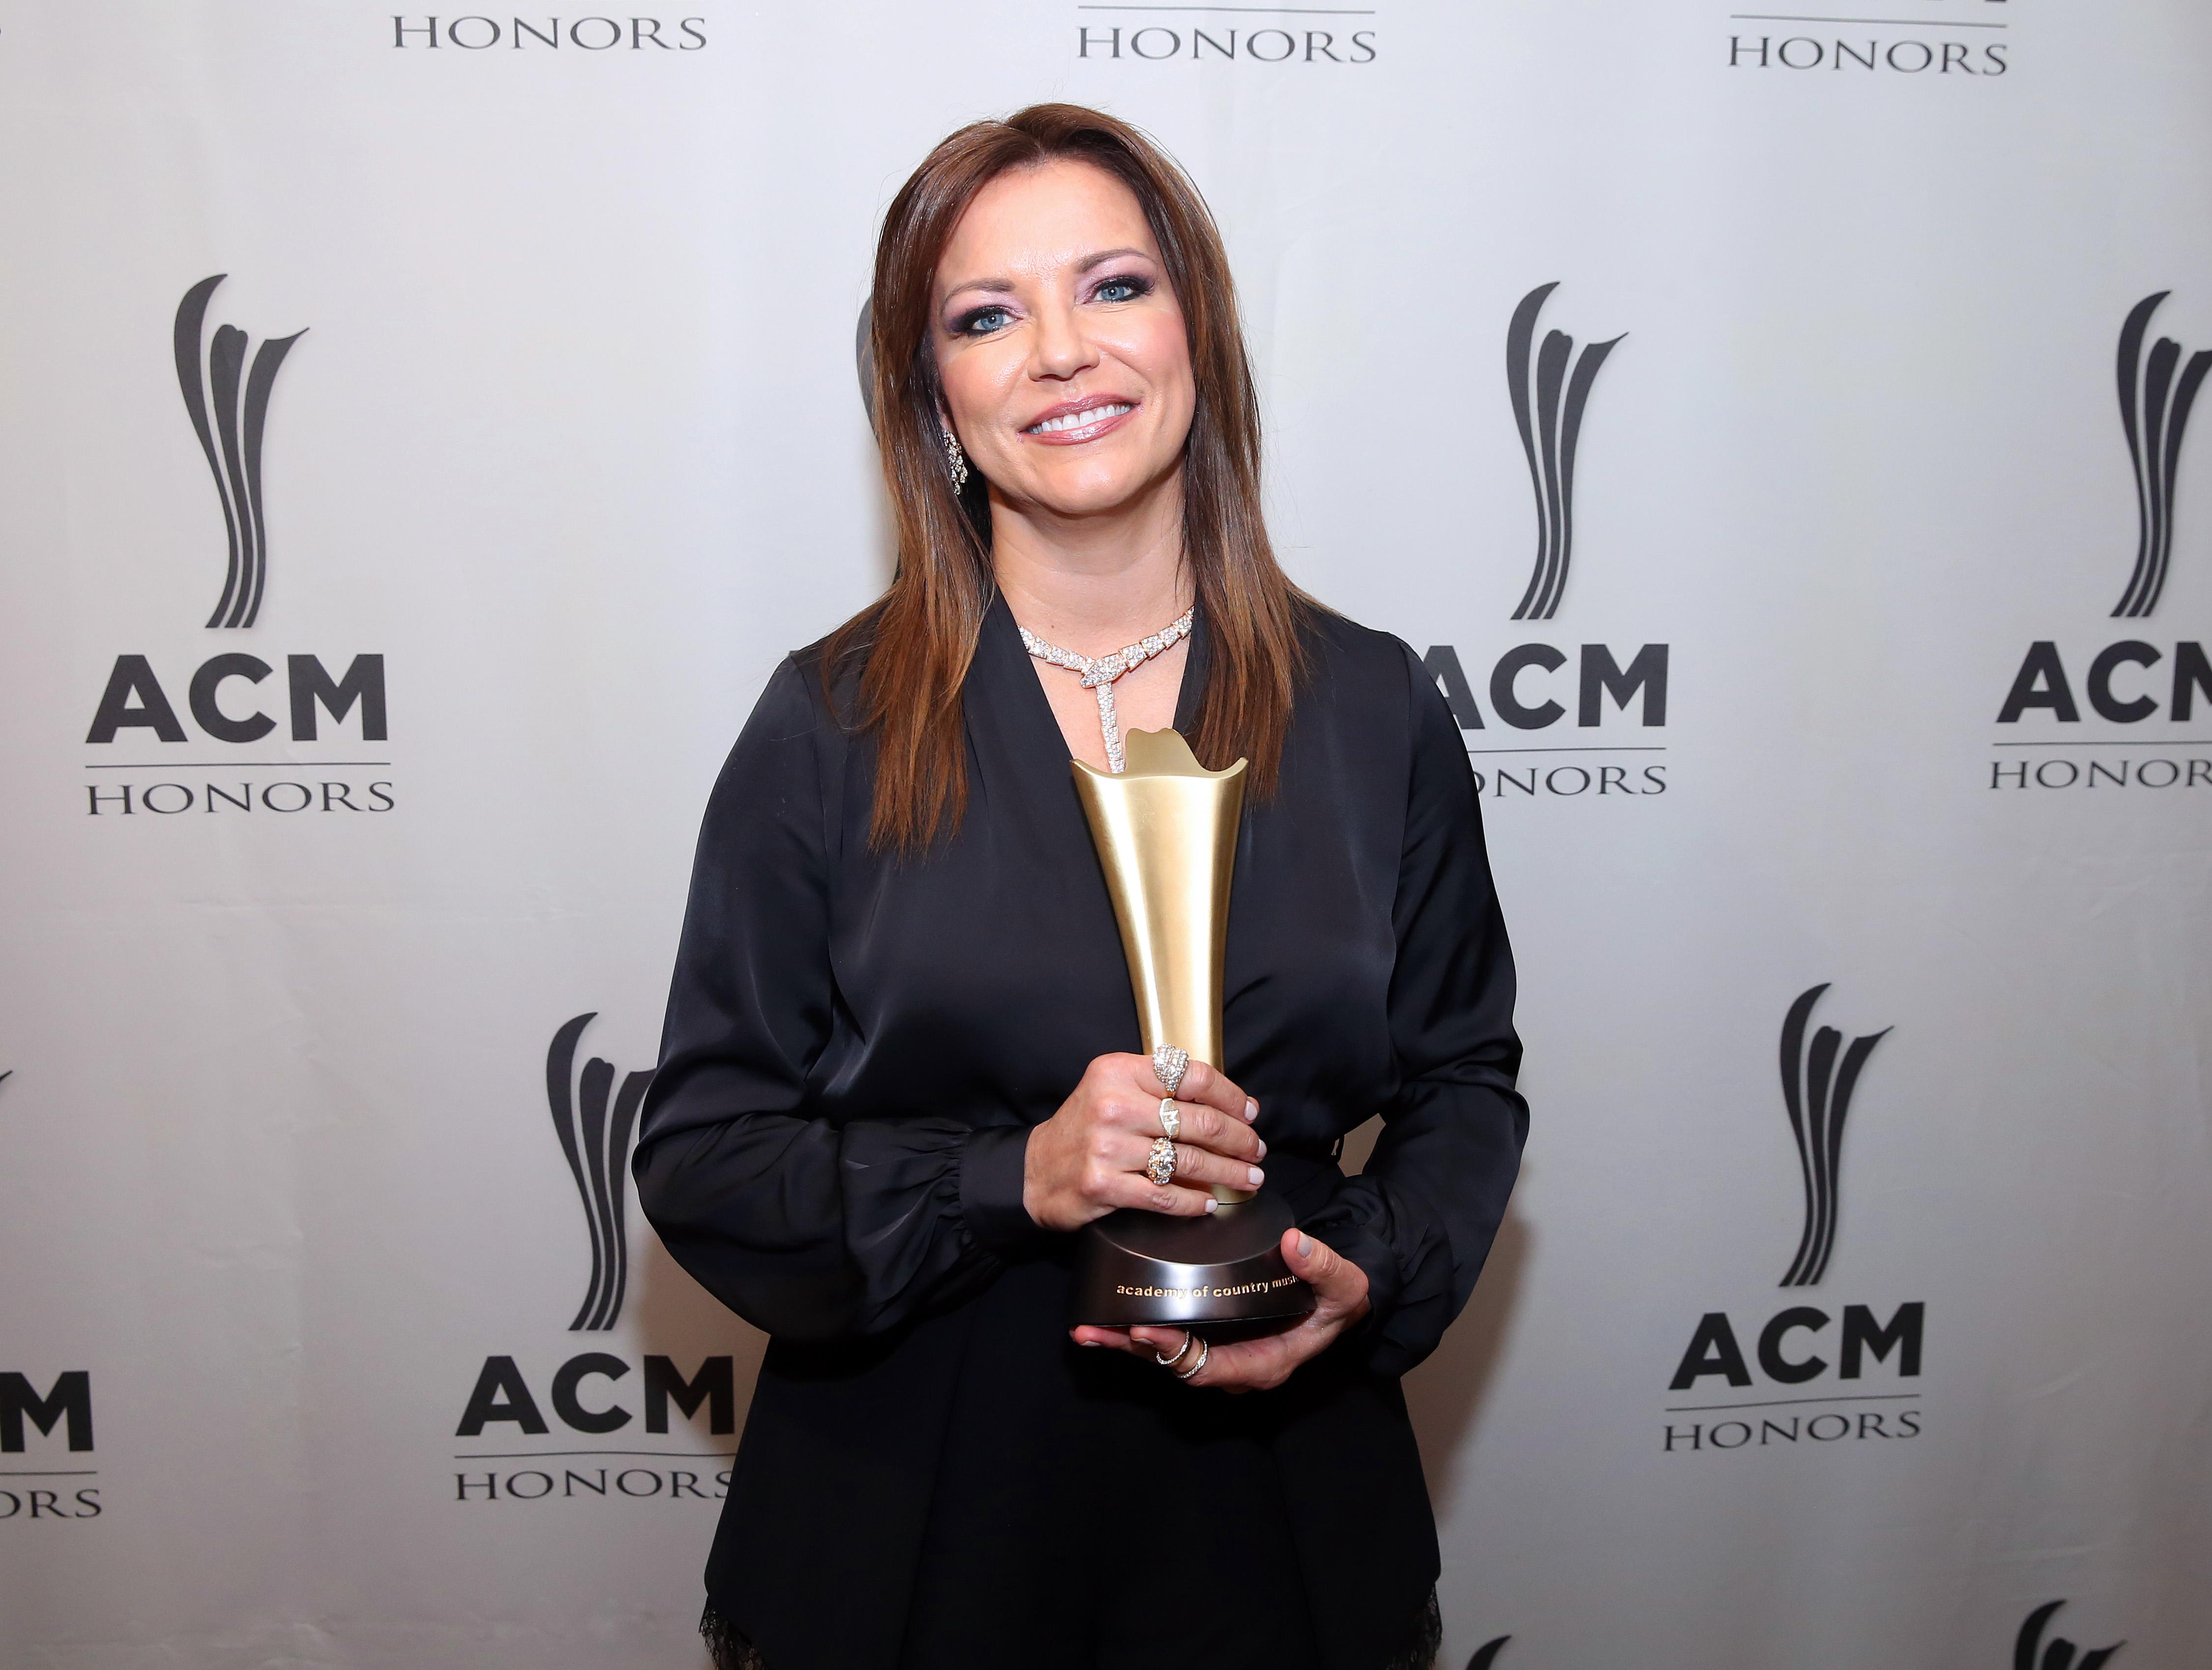 Martina McBride slams Spotify for not promoting female artists: 'Is it lazy? Is it discriminatory?'